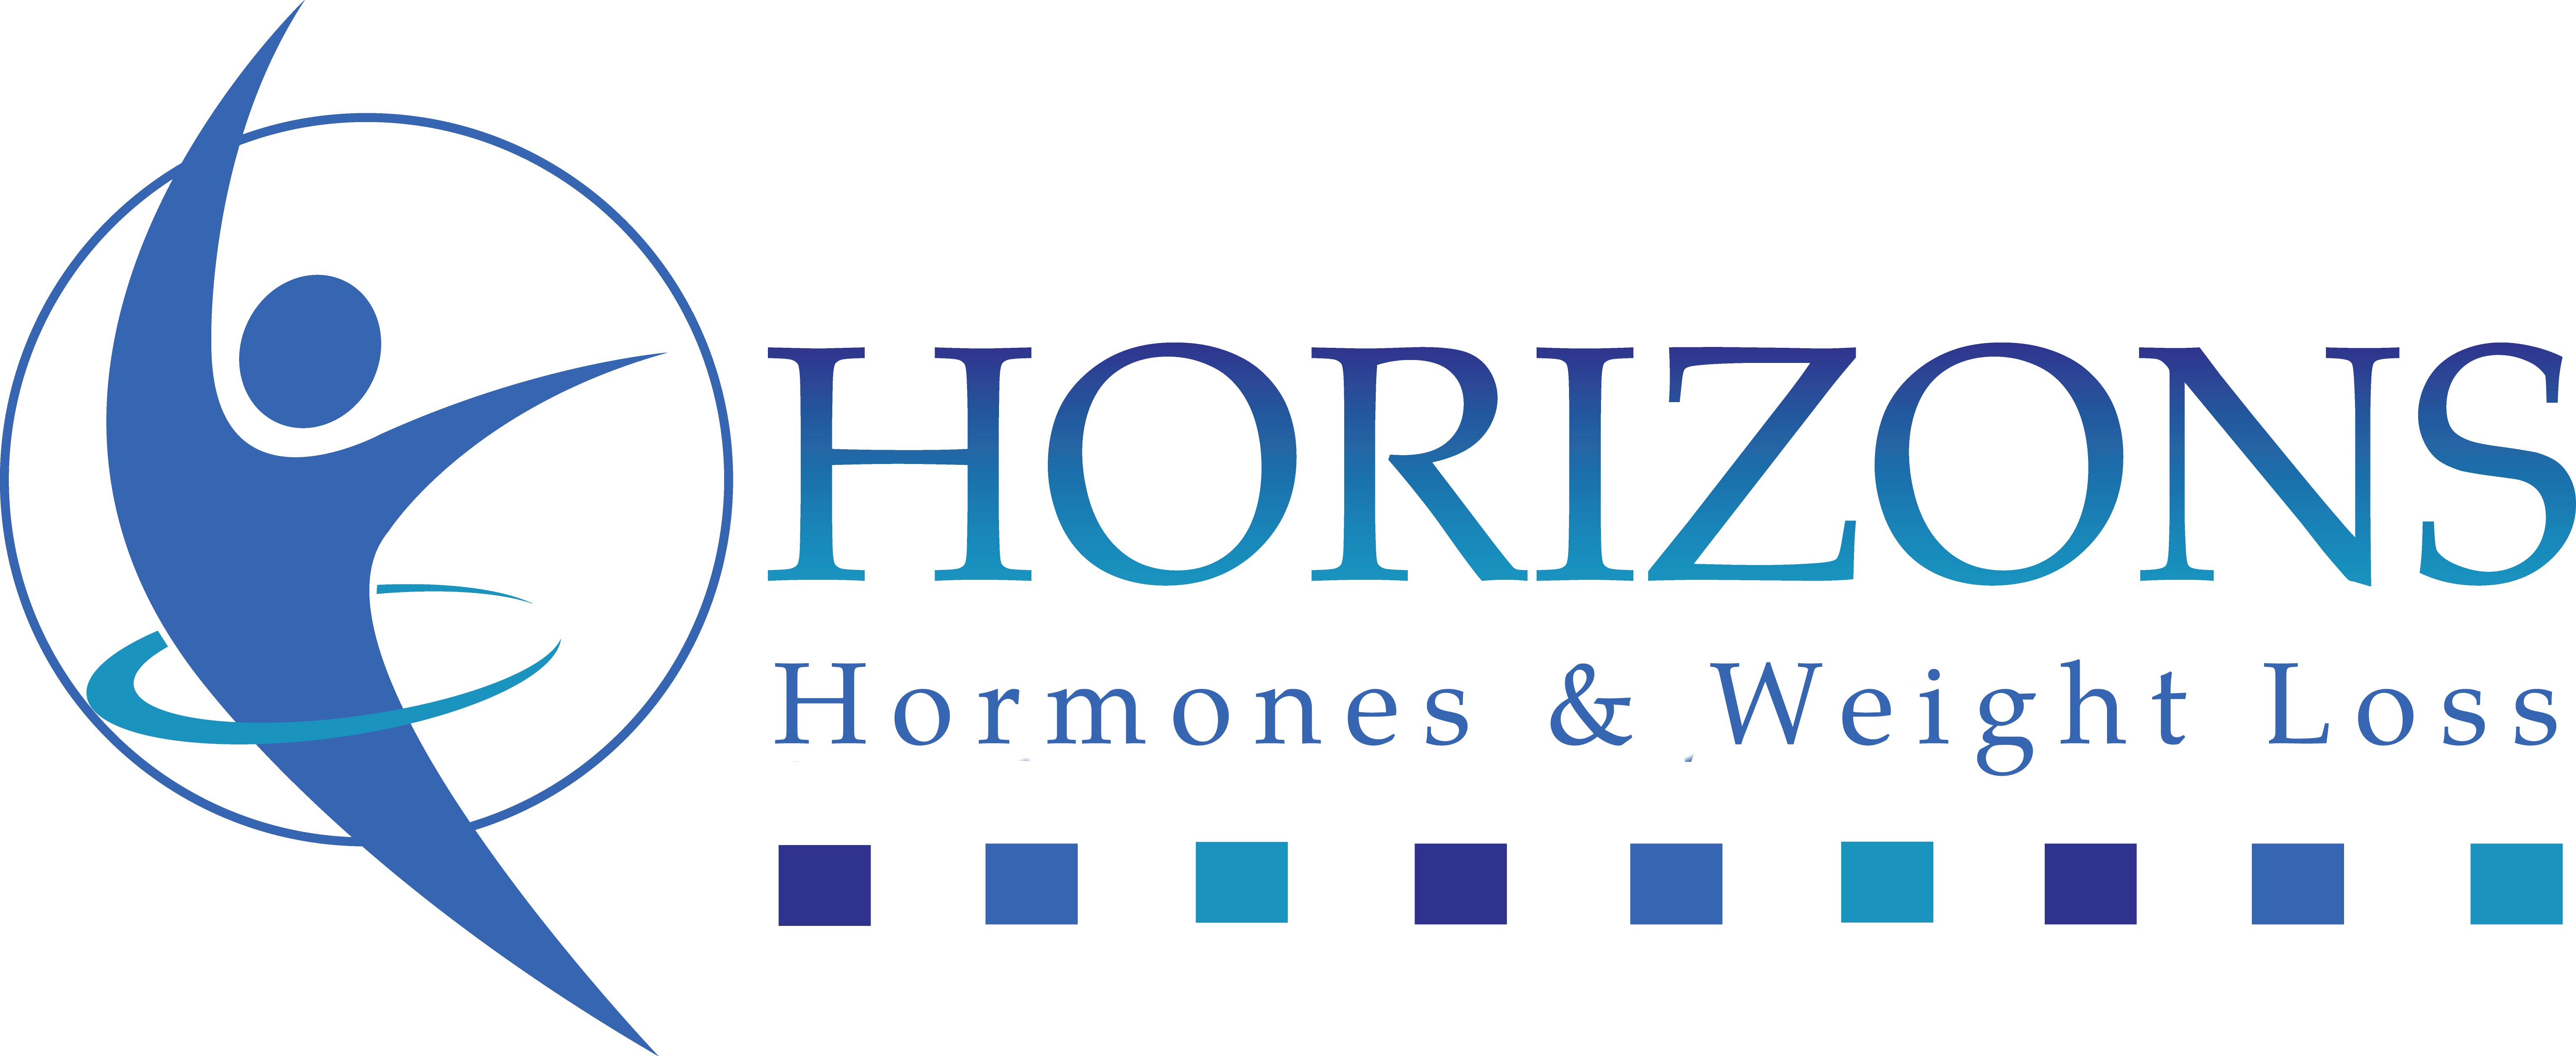 Horizons Wellness & Weight Loss